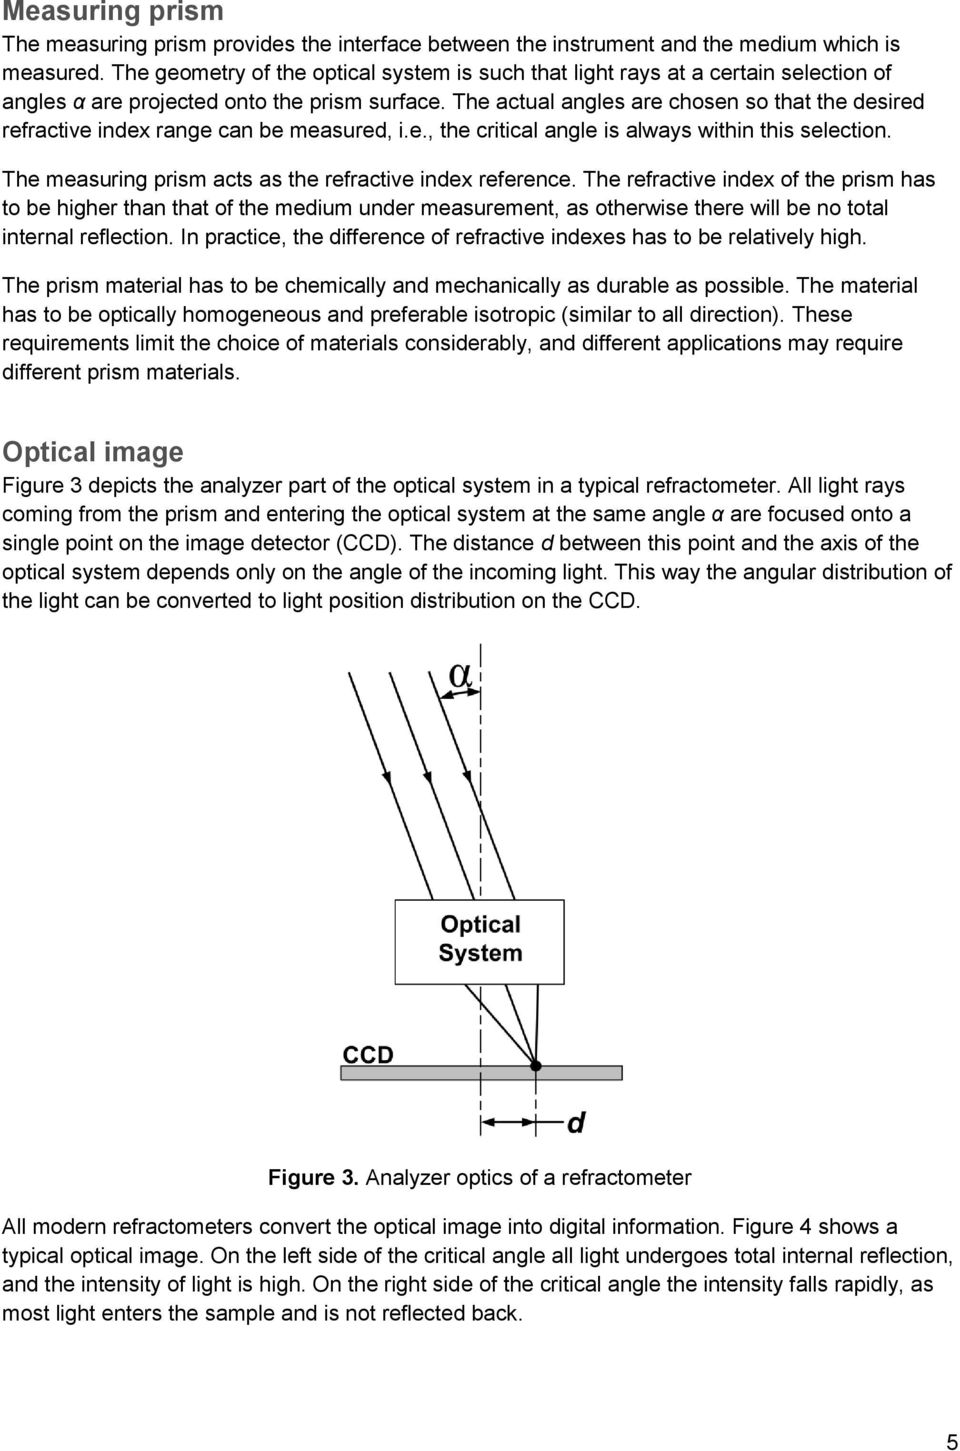 The actual angles are chosen so that the desired refractive index range can be measured, i.e., the critical angle is always within this selection.